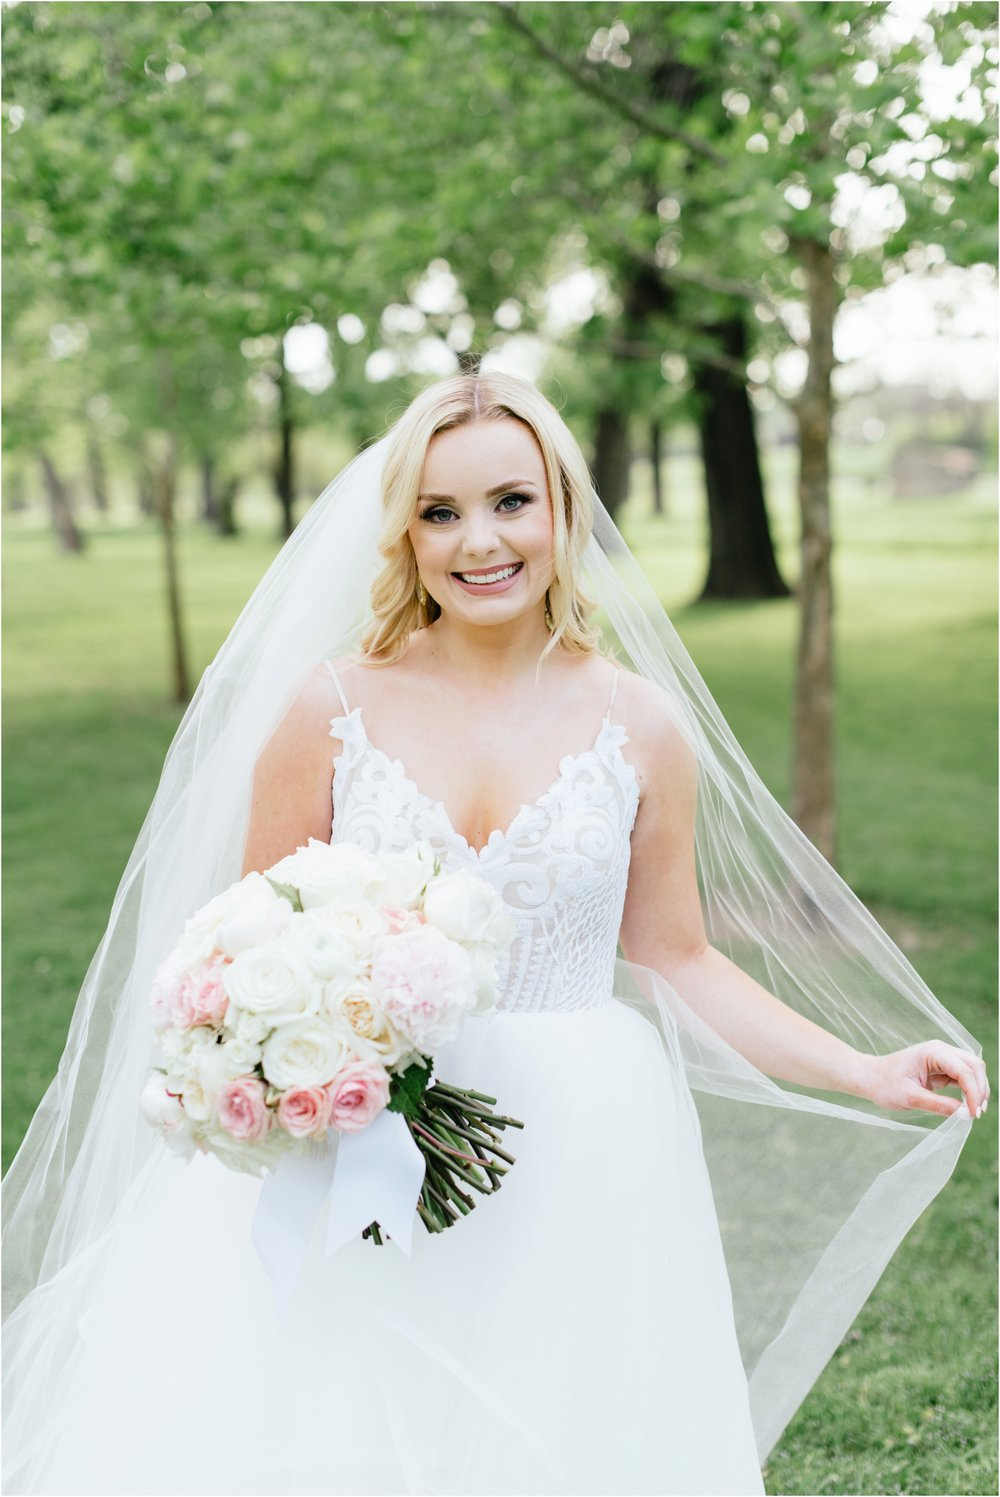 dallasweddingphotographer_texasweddingphotographer_mattandjulieweddings_modernfortworth_fortworthweddingphotographer_0877.jpg